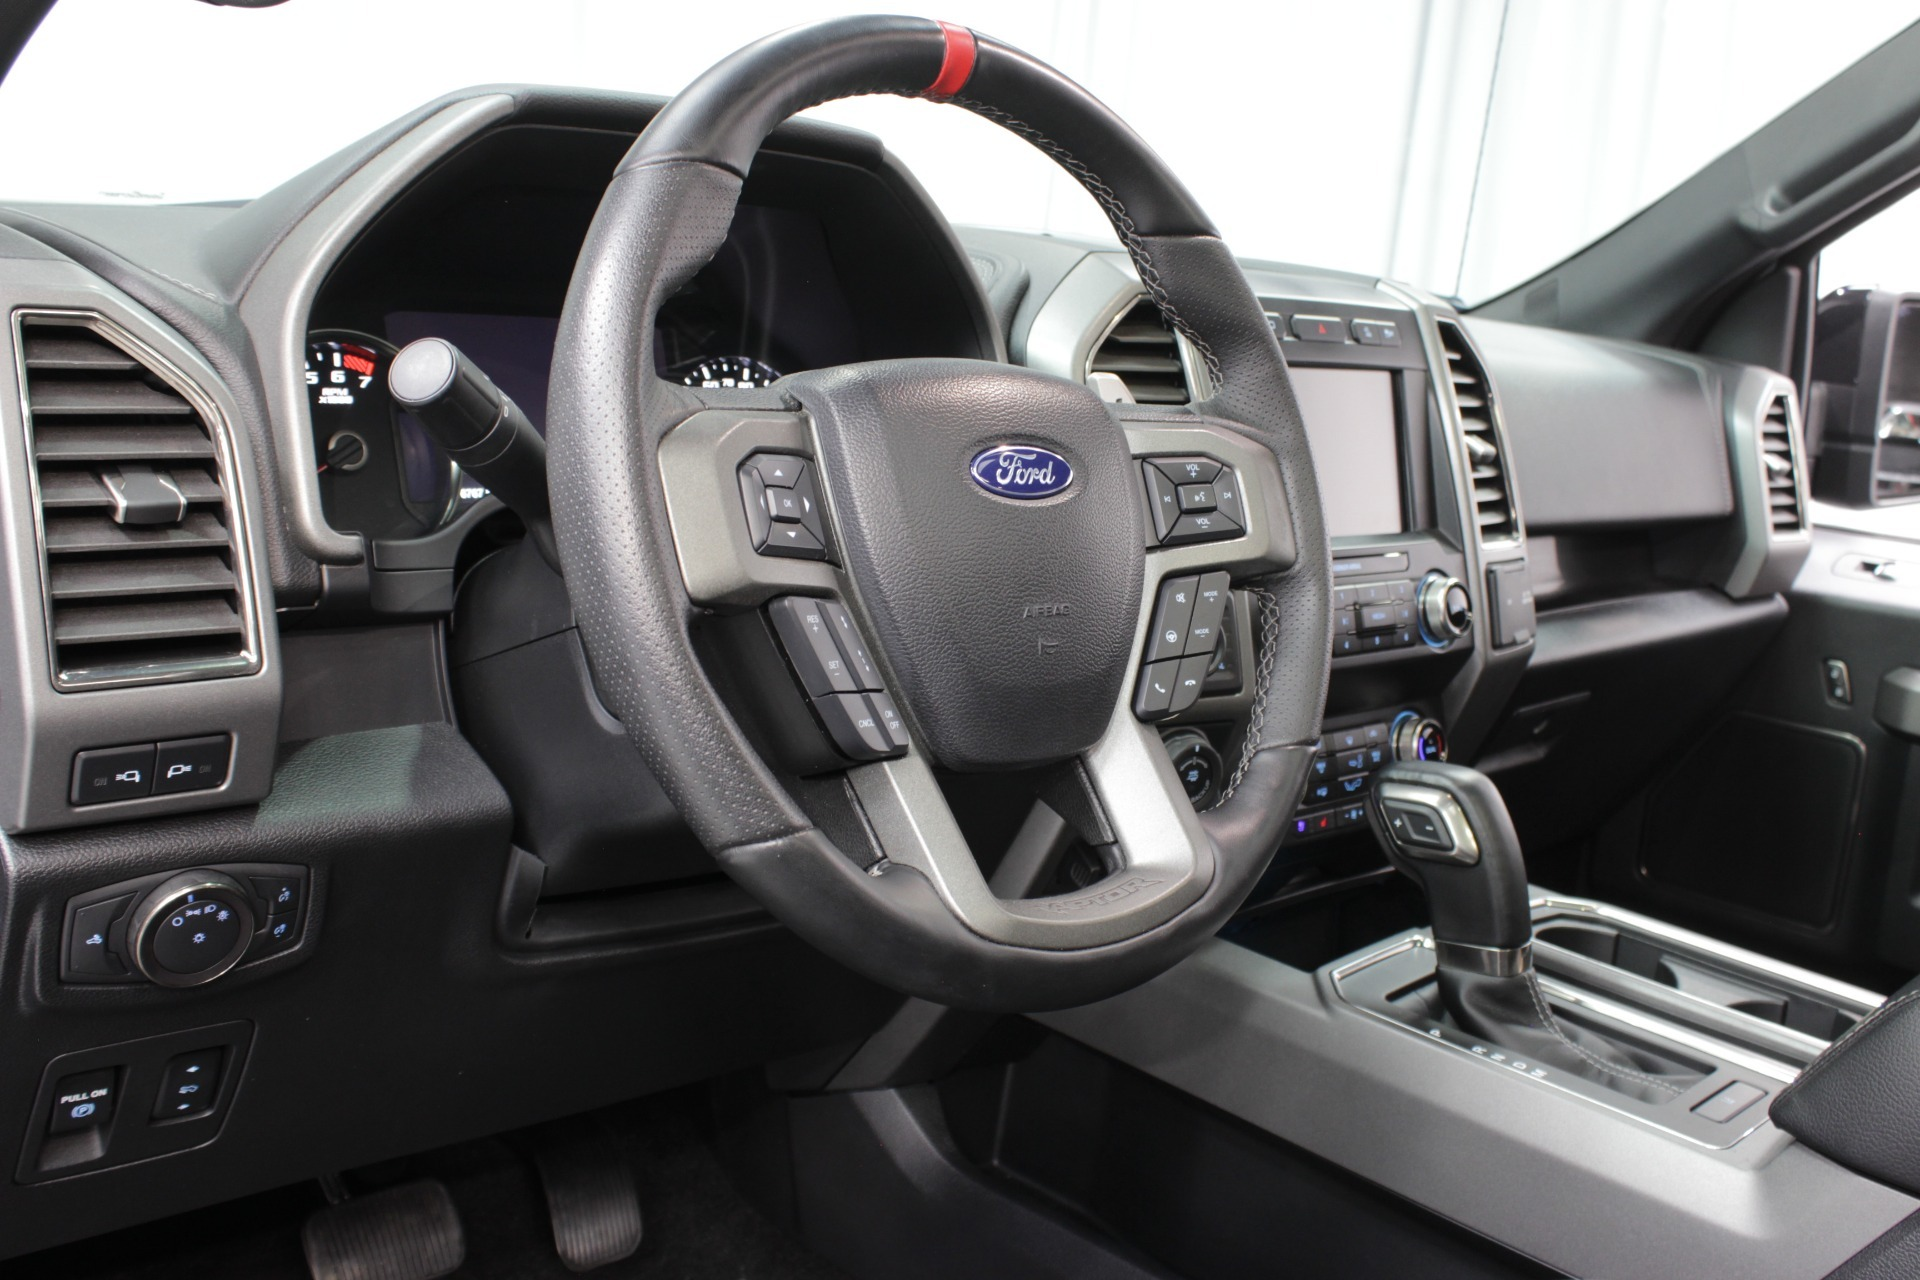 Used 2019 Ford F-150 RAPTOR 4x4 HENNESSY VELOCIRAPTOR VR600 UPGRADE (600HP) for sale $99,995 at Formula Imports in Charlotte NC 28227 19